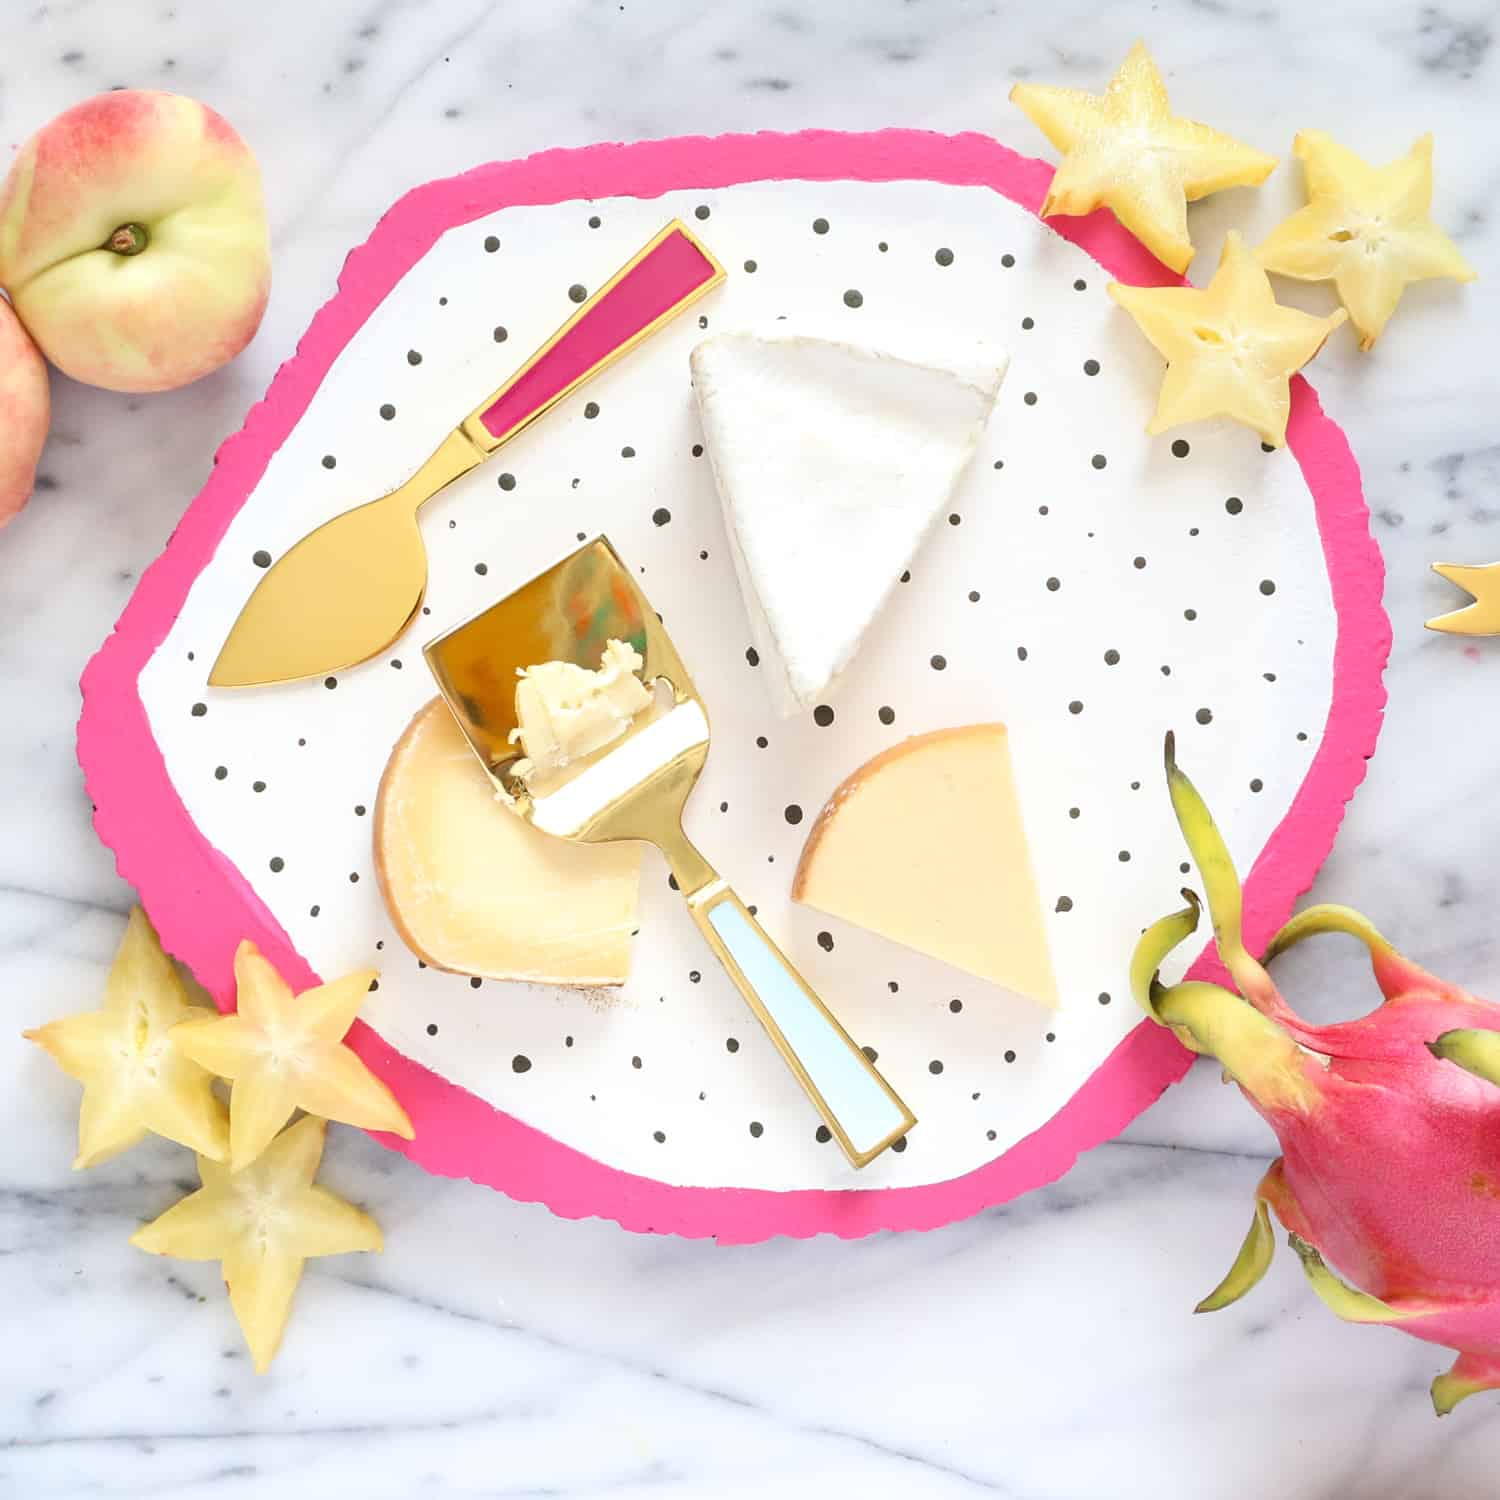 DIY-A-Fruit-Slice-Cheese-Board-Click-Through-for-Tutorial